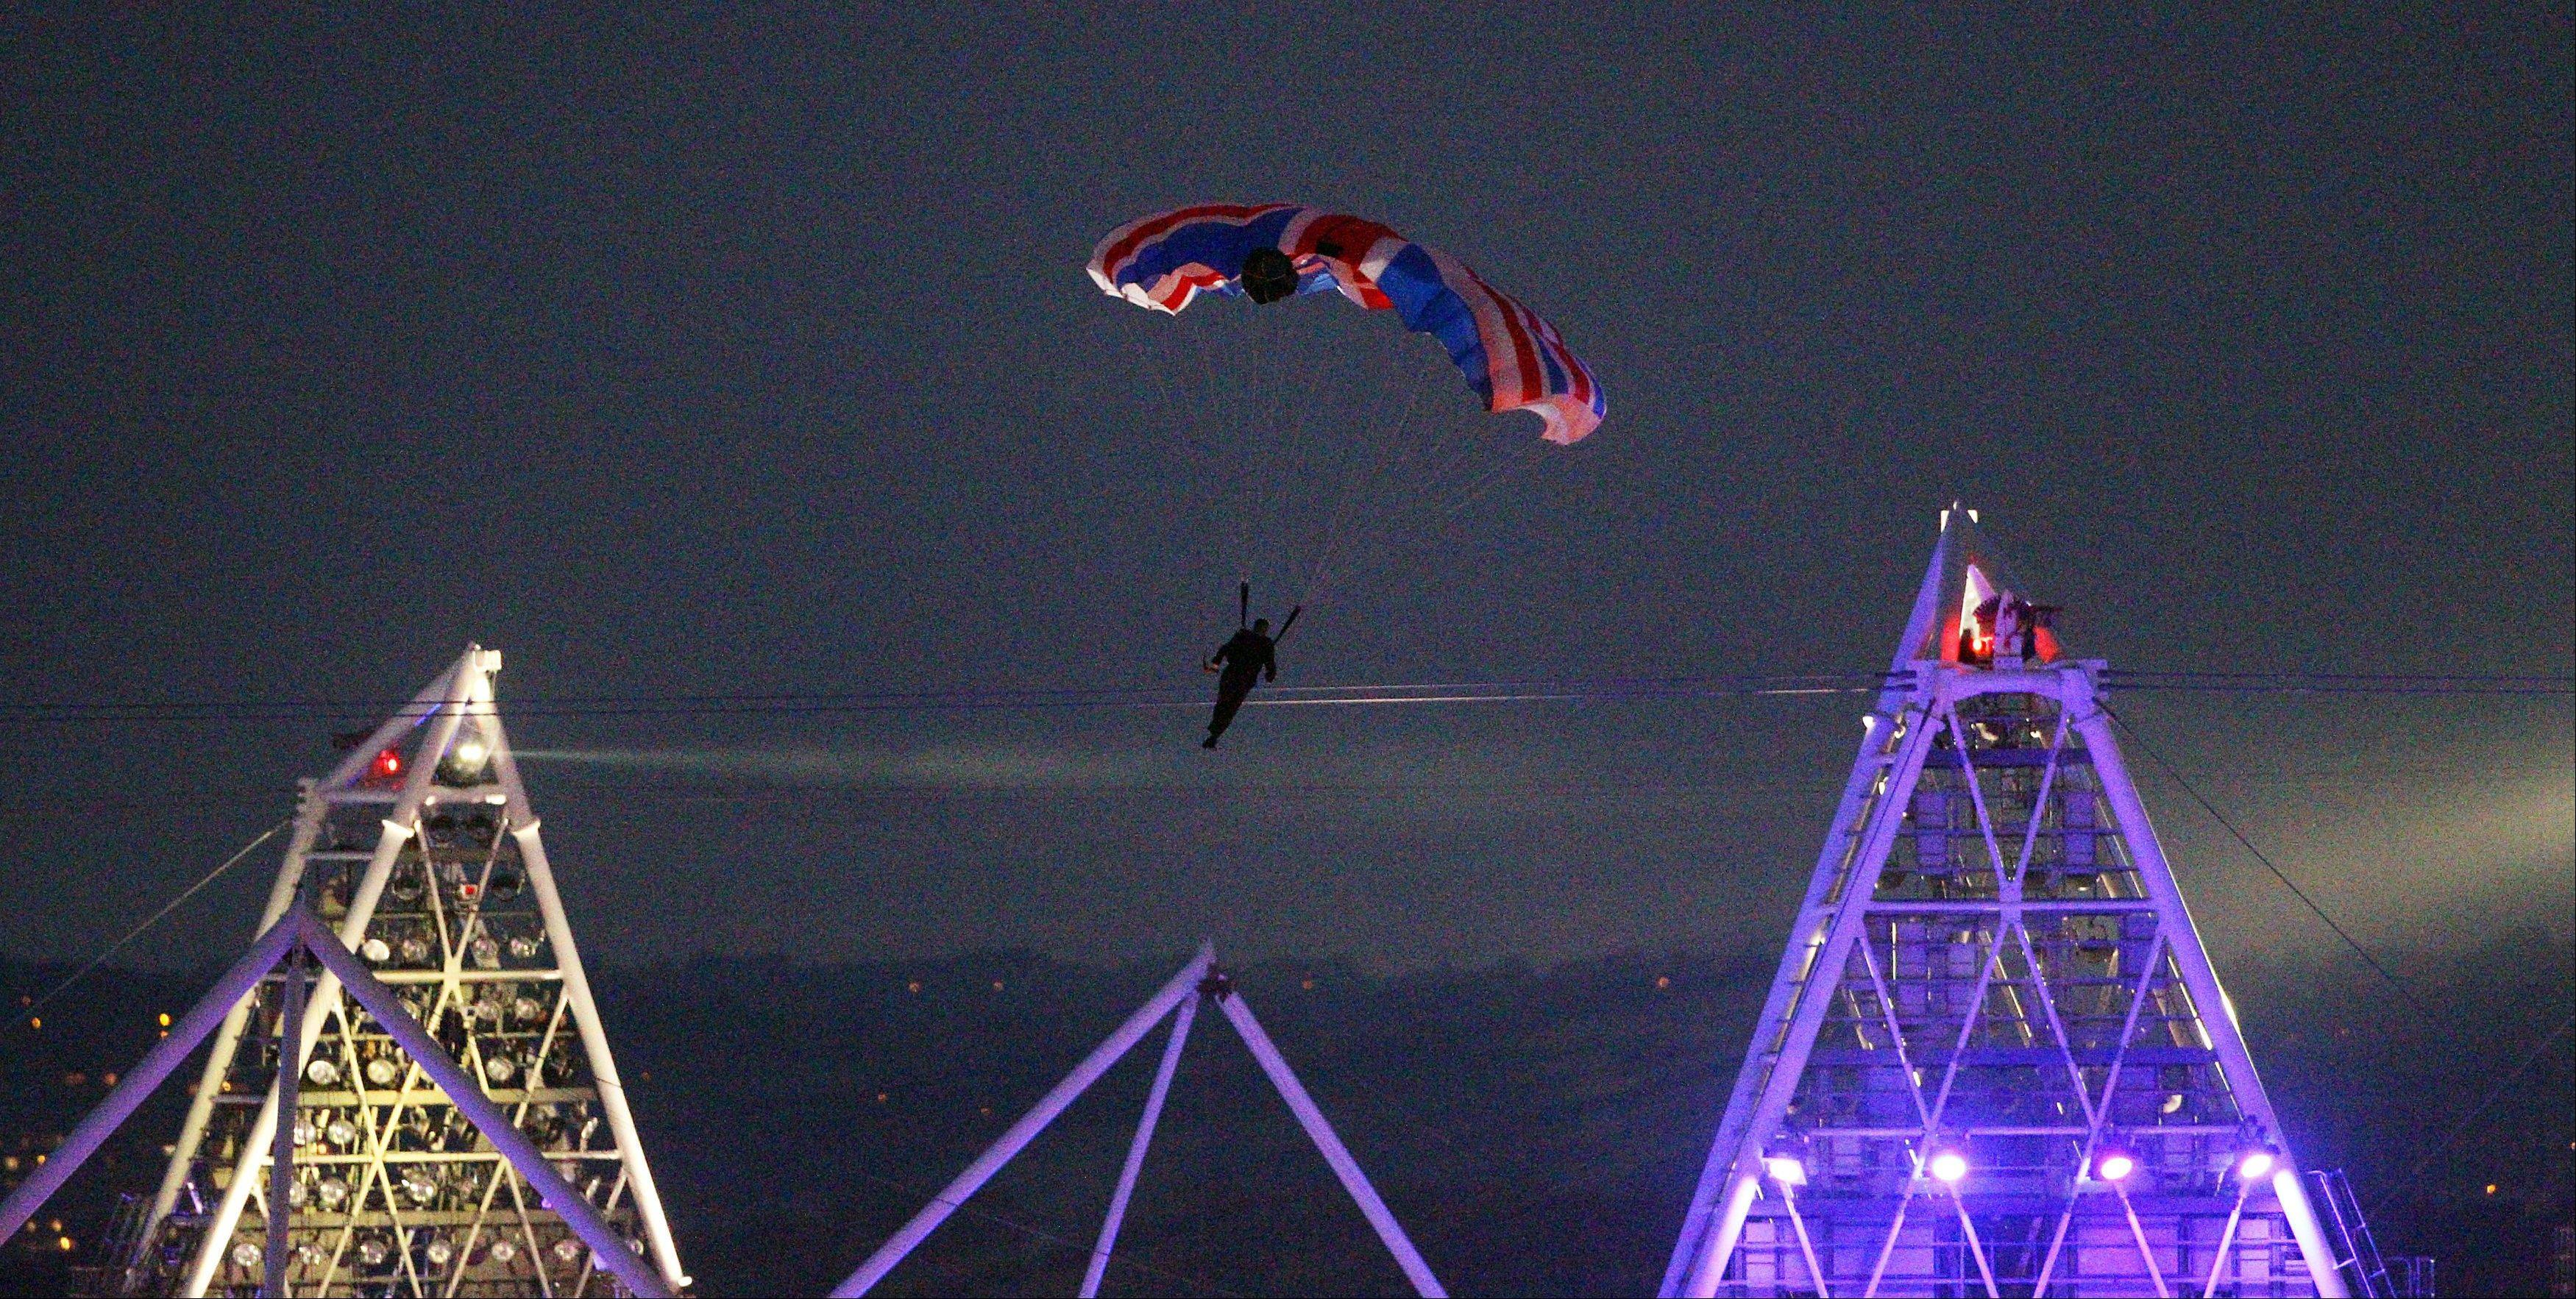 British stuntman Mark Sutton, who parachuted into the Olympic Stadium dressed as James Bond during the Olympic Games 2012 Opening Ceremony, died in an accident in the Swiss Alps while flying a special wing suit.